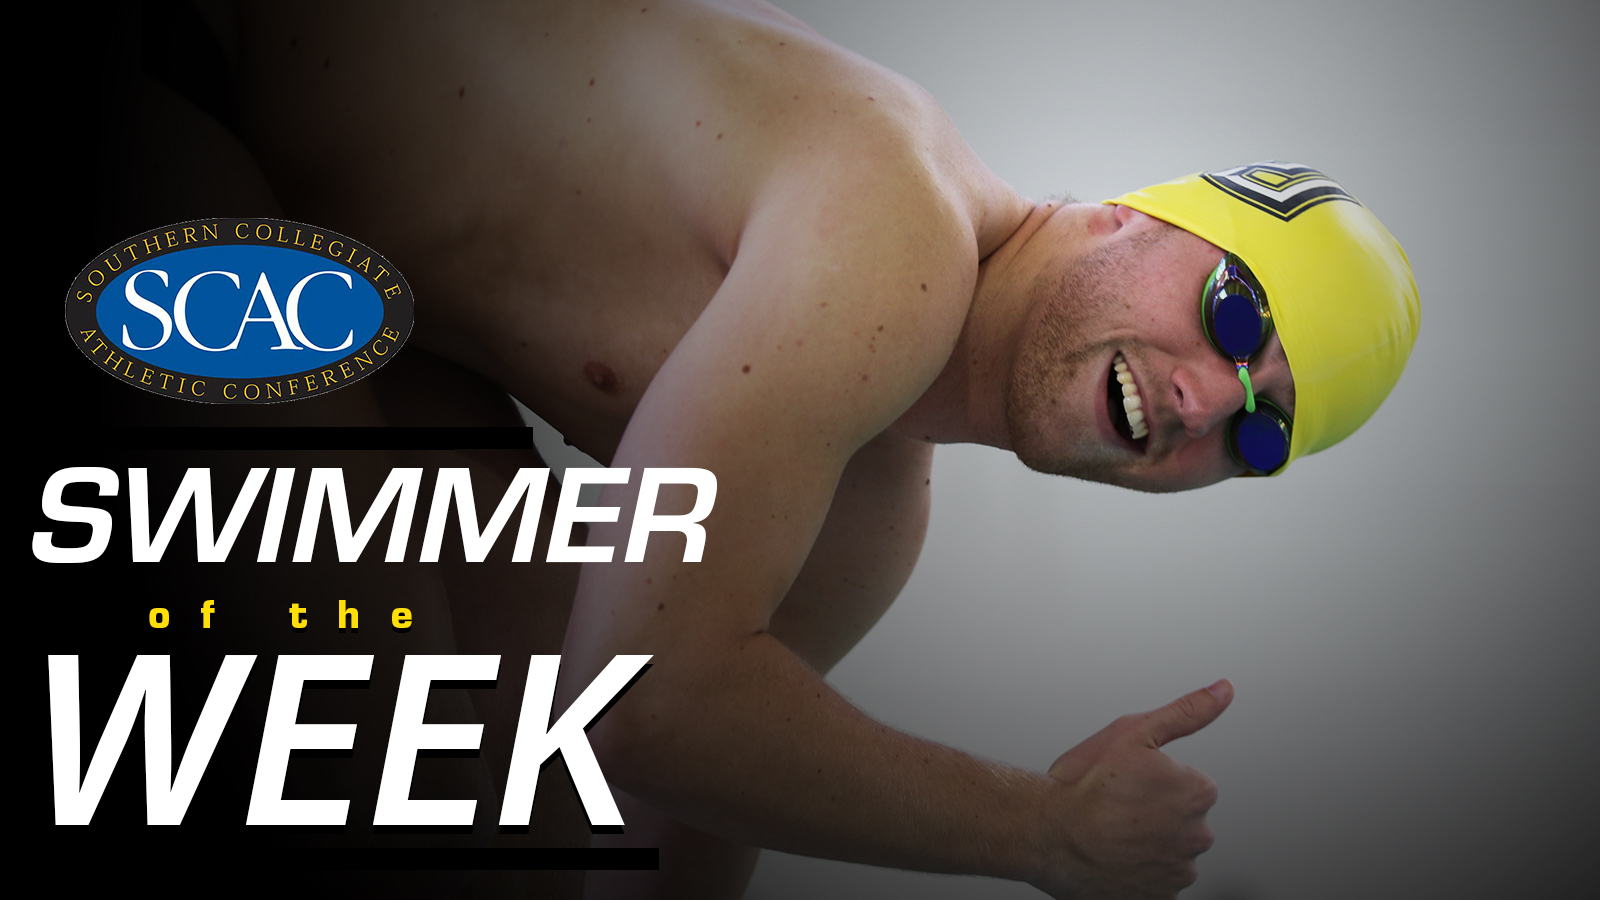 Gill Earns SCAC Swimmer of the Week for a Second Time